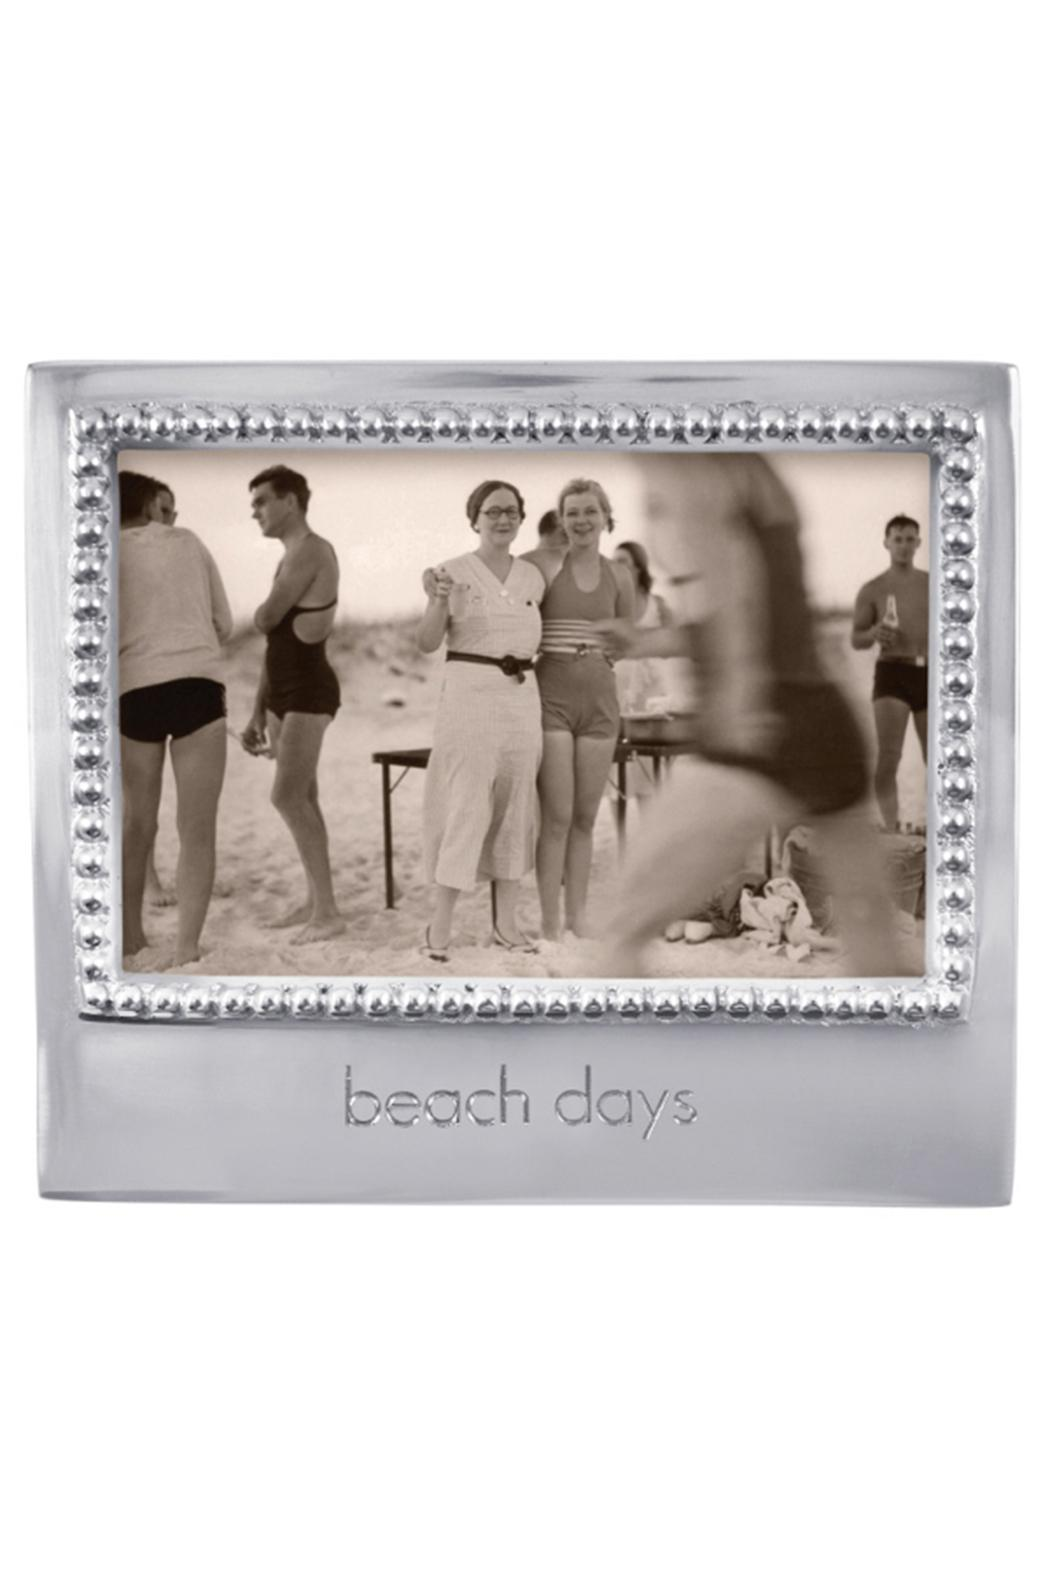 Mariposa Beach Days Frame from Massachusetts by Mimi — Shoptiques